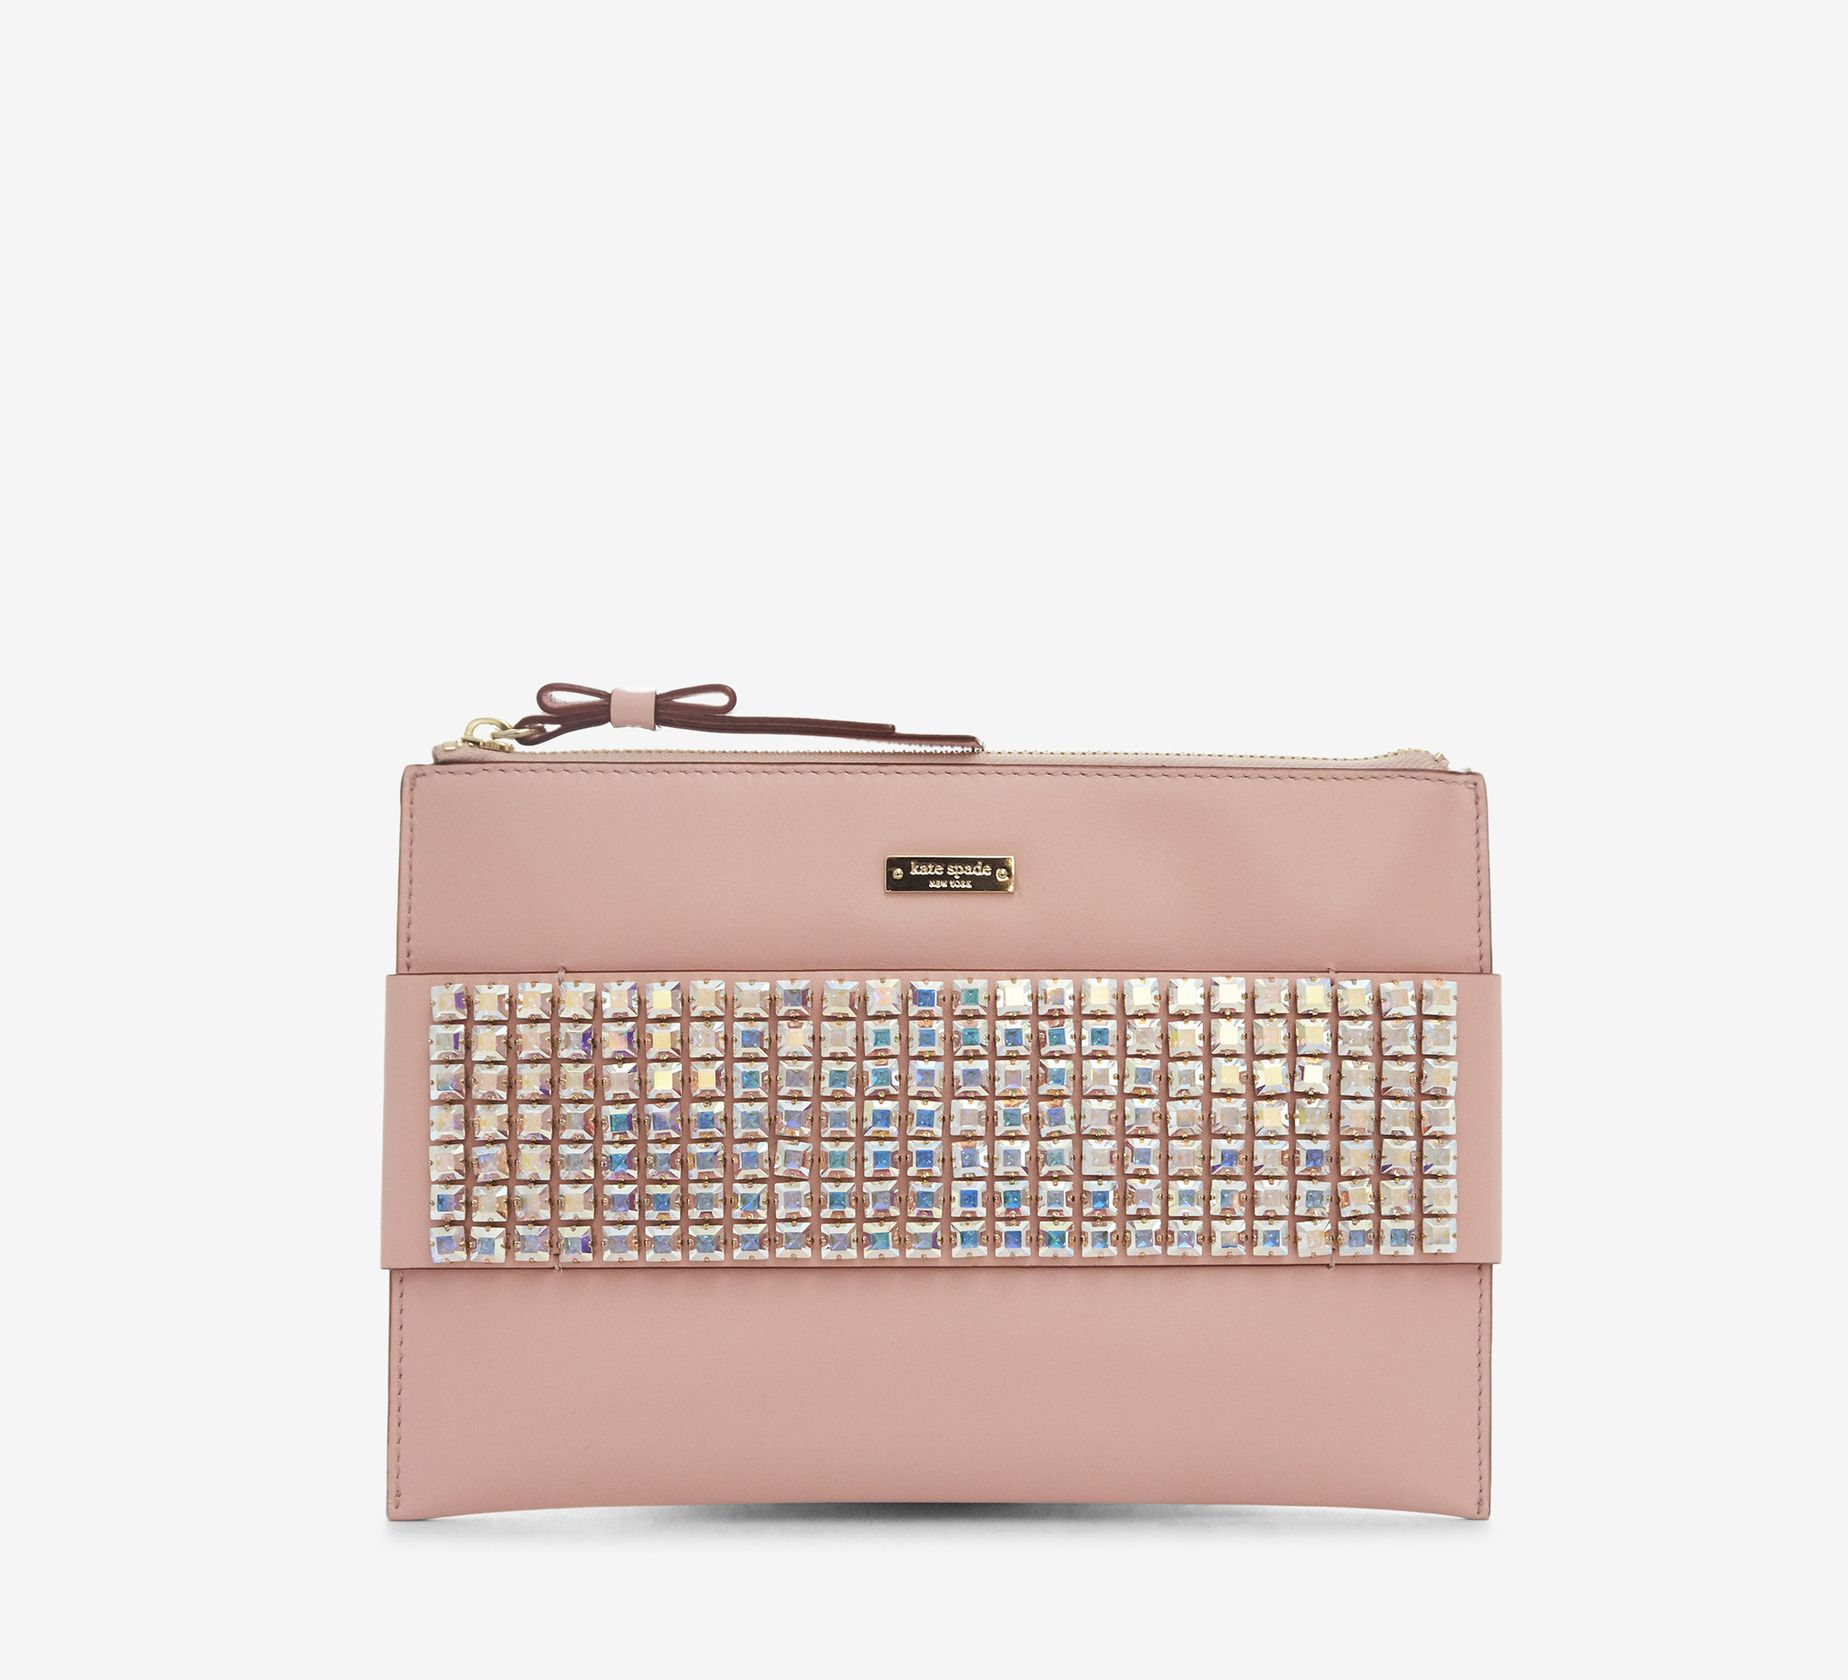 Kate Spade New York Pink Clutch